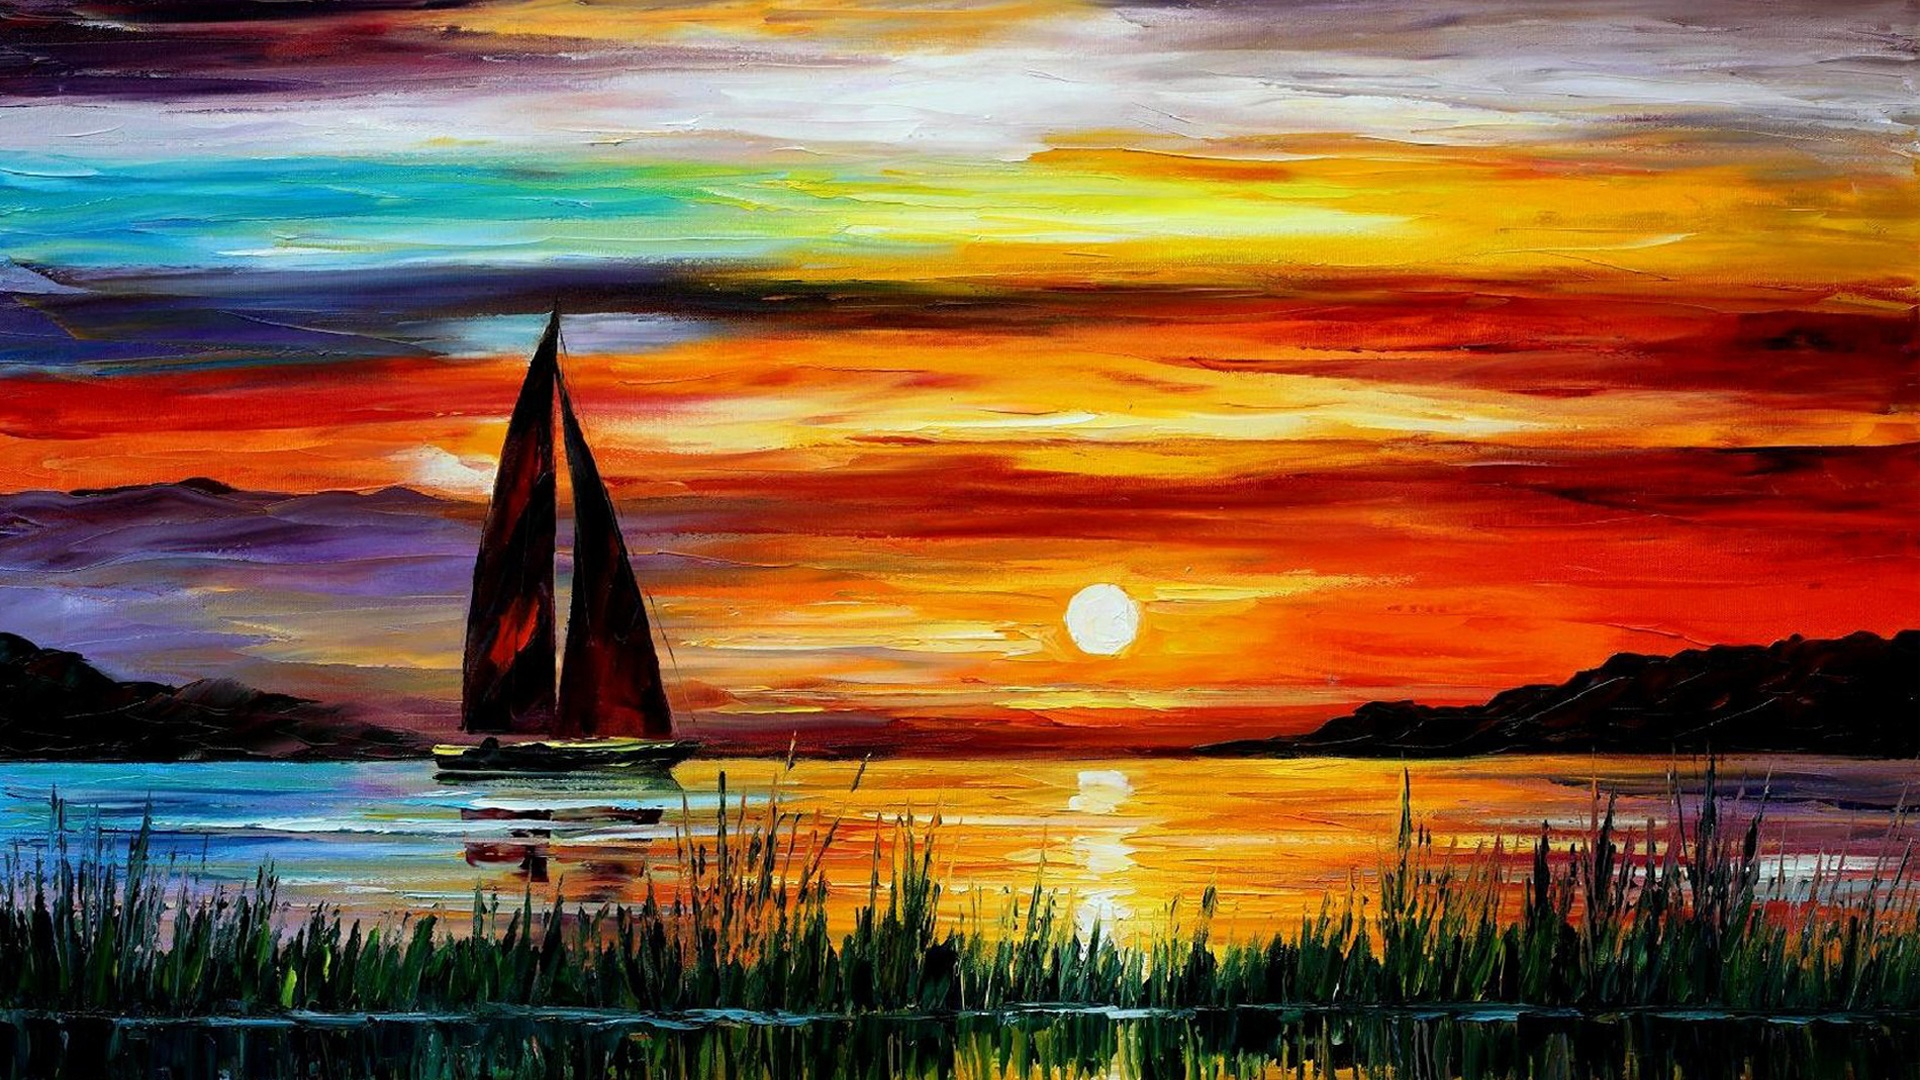 Sunset Painting on 1208 html